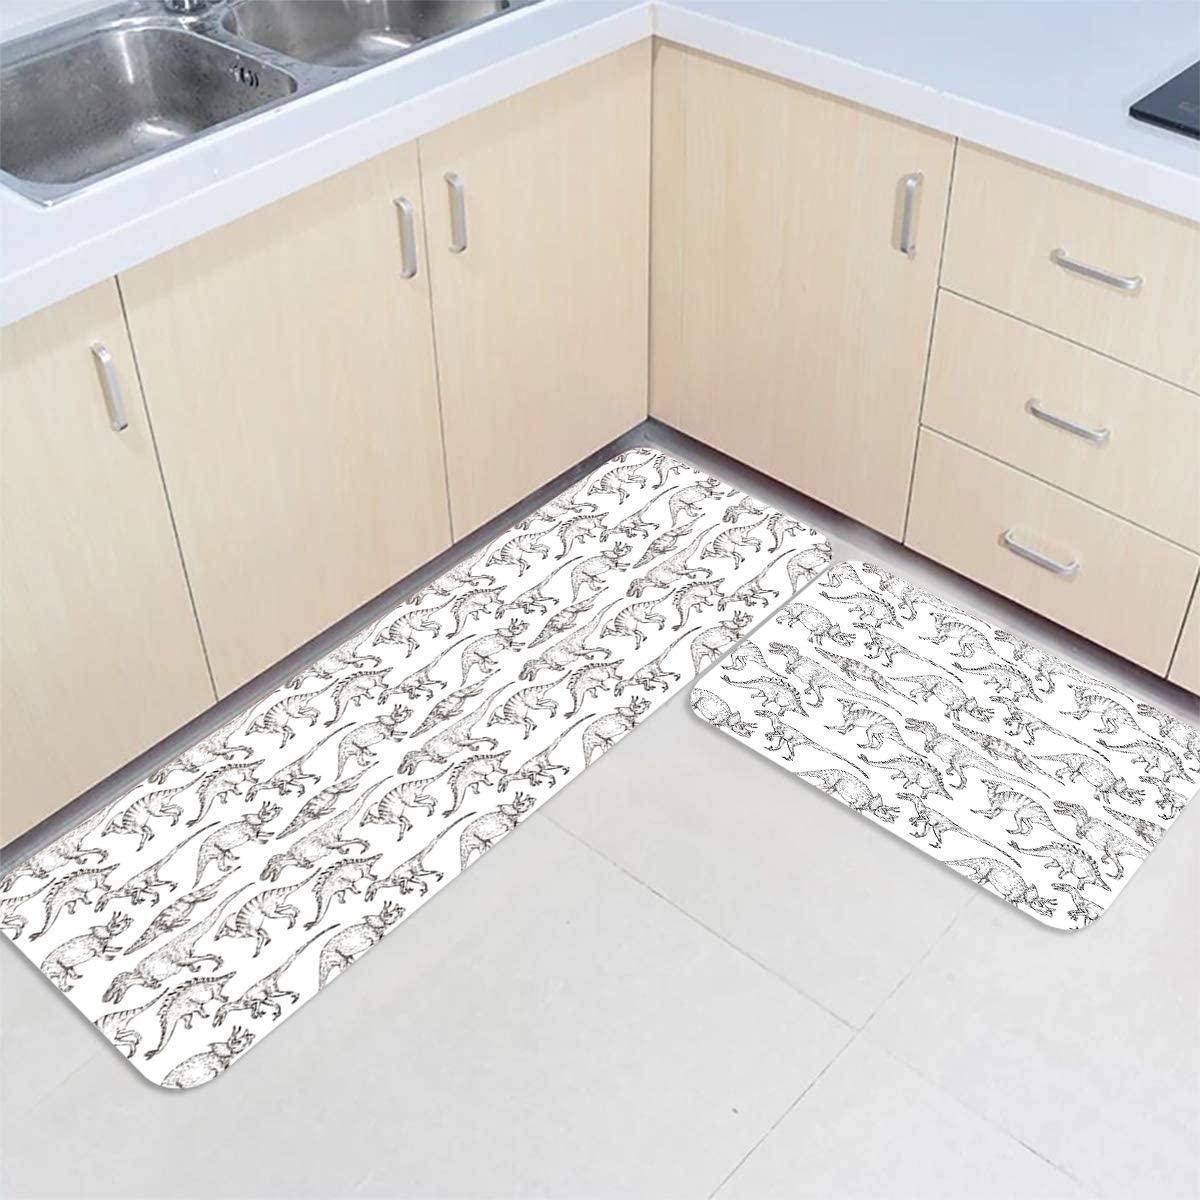 IDOWMAT Ranking integrated 1st place NEW before selling ☆ Kitchen Mat Set of 2 Non-Slip Floor Premium